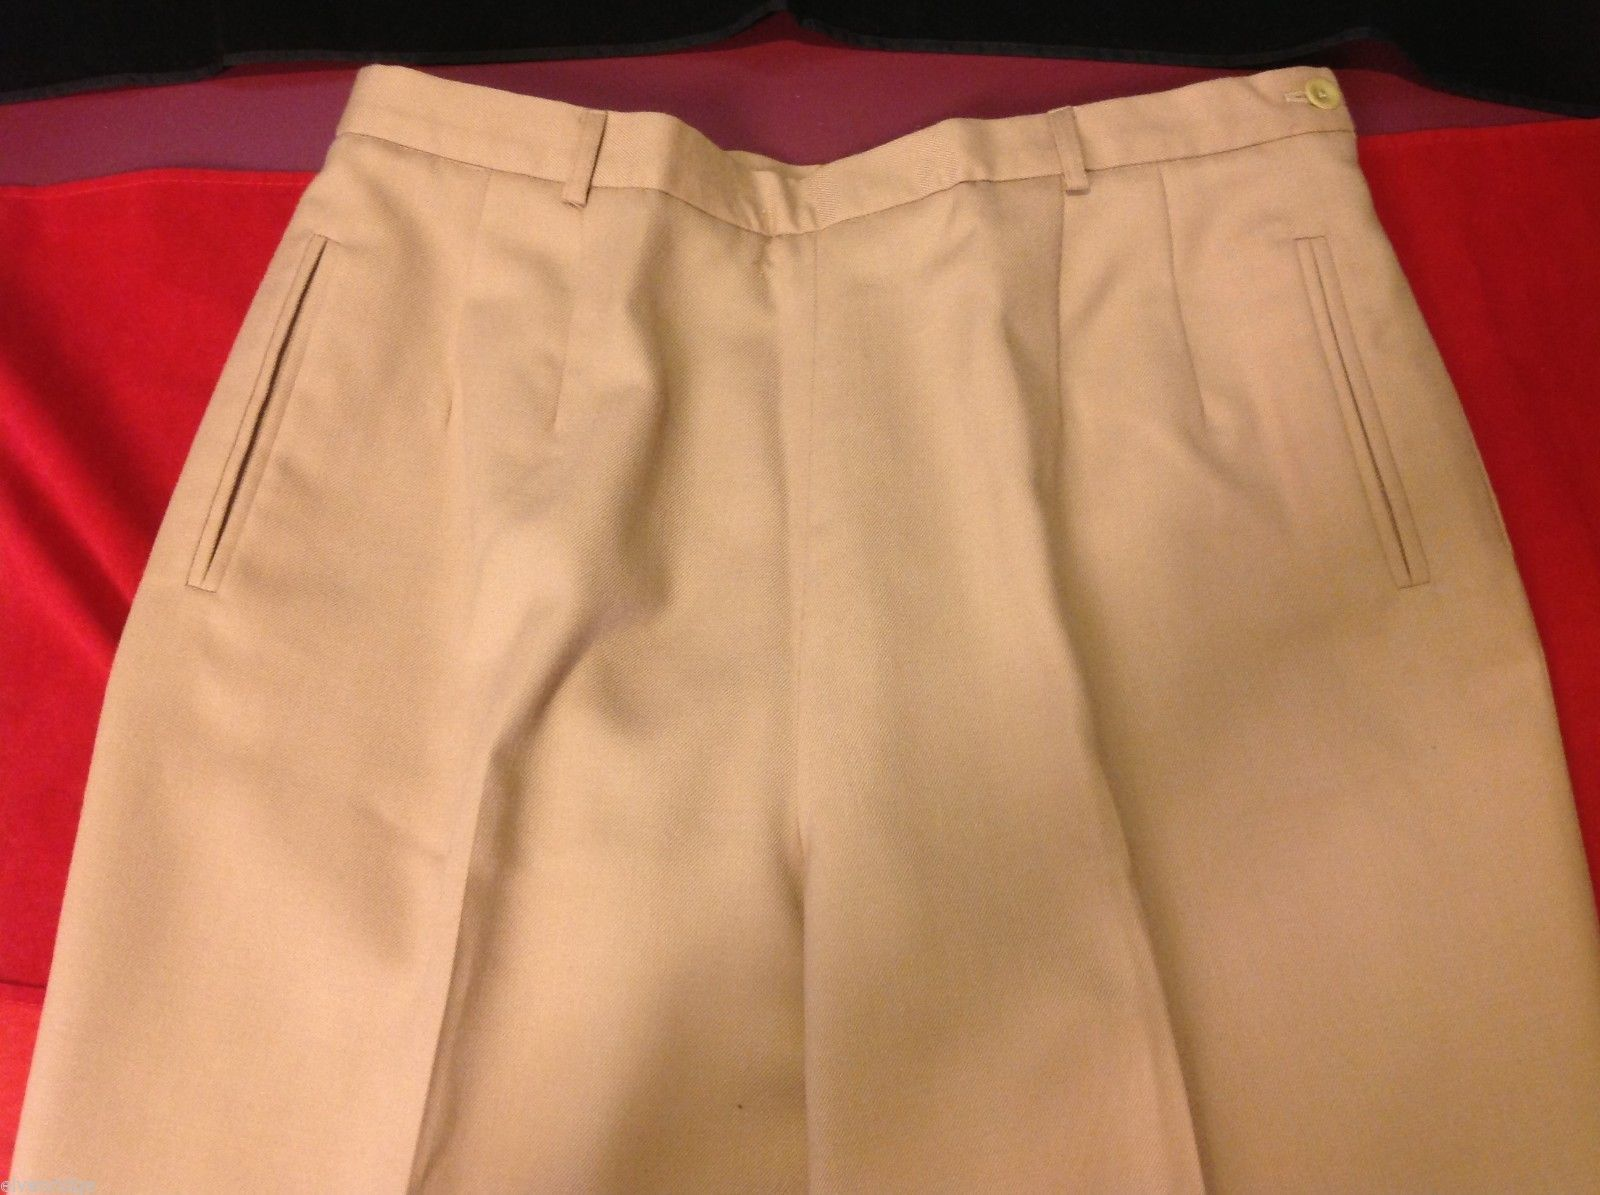 taibots dress pants Khaki petites size 14